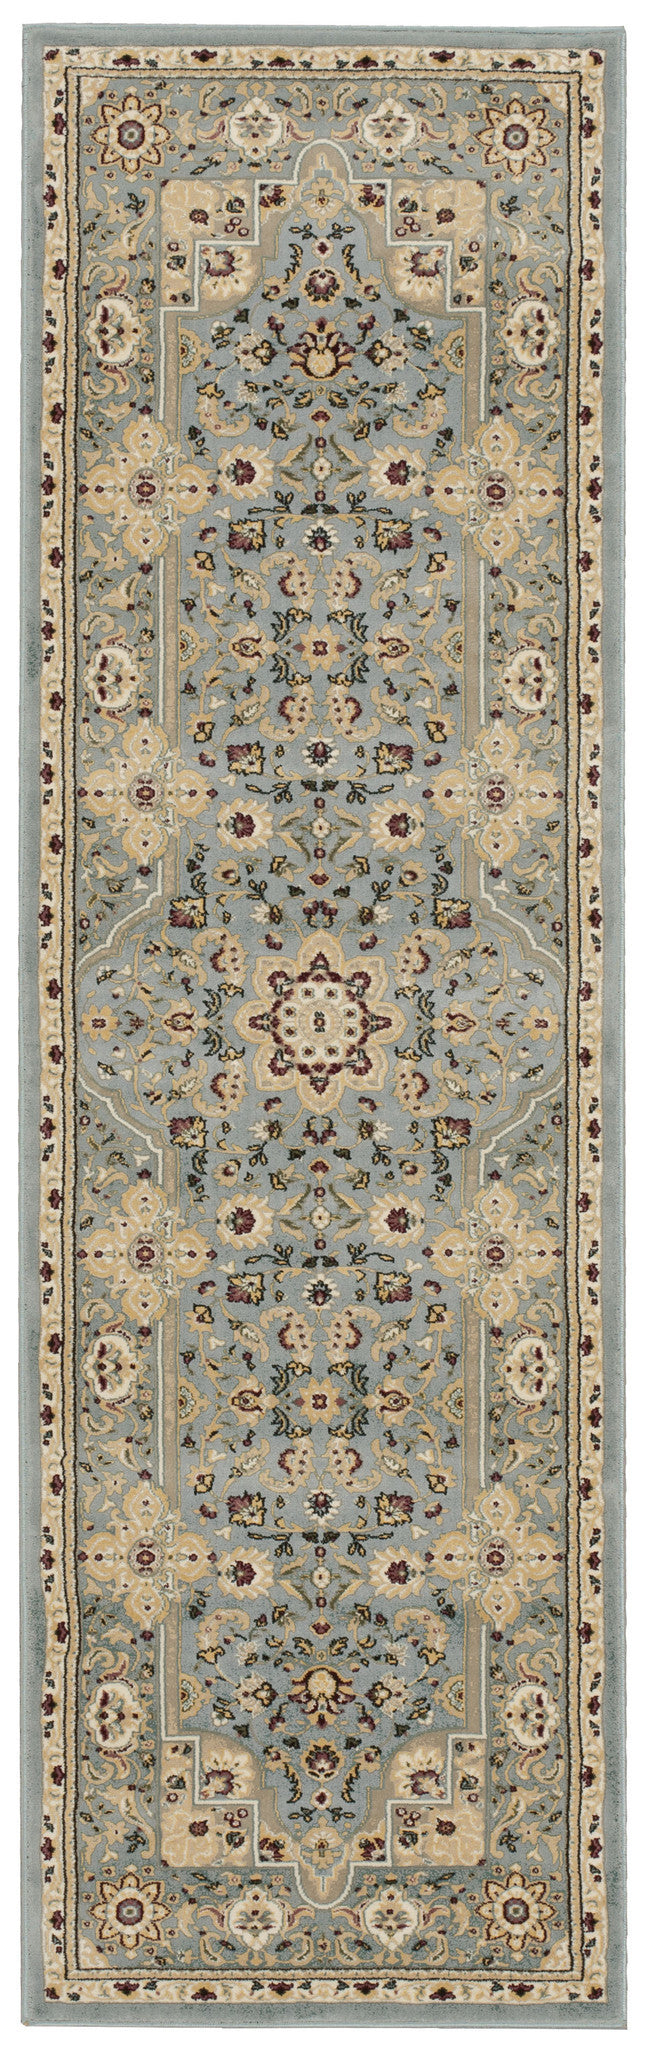 Kathy Ireland Antiquities Imperial Garden Slate Blue Area Rug By Nourison ANT06 SLTBL